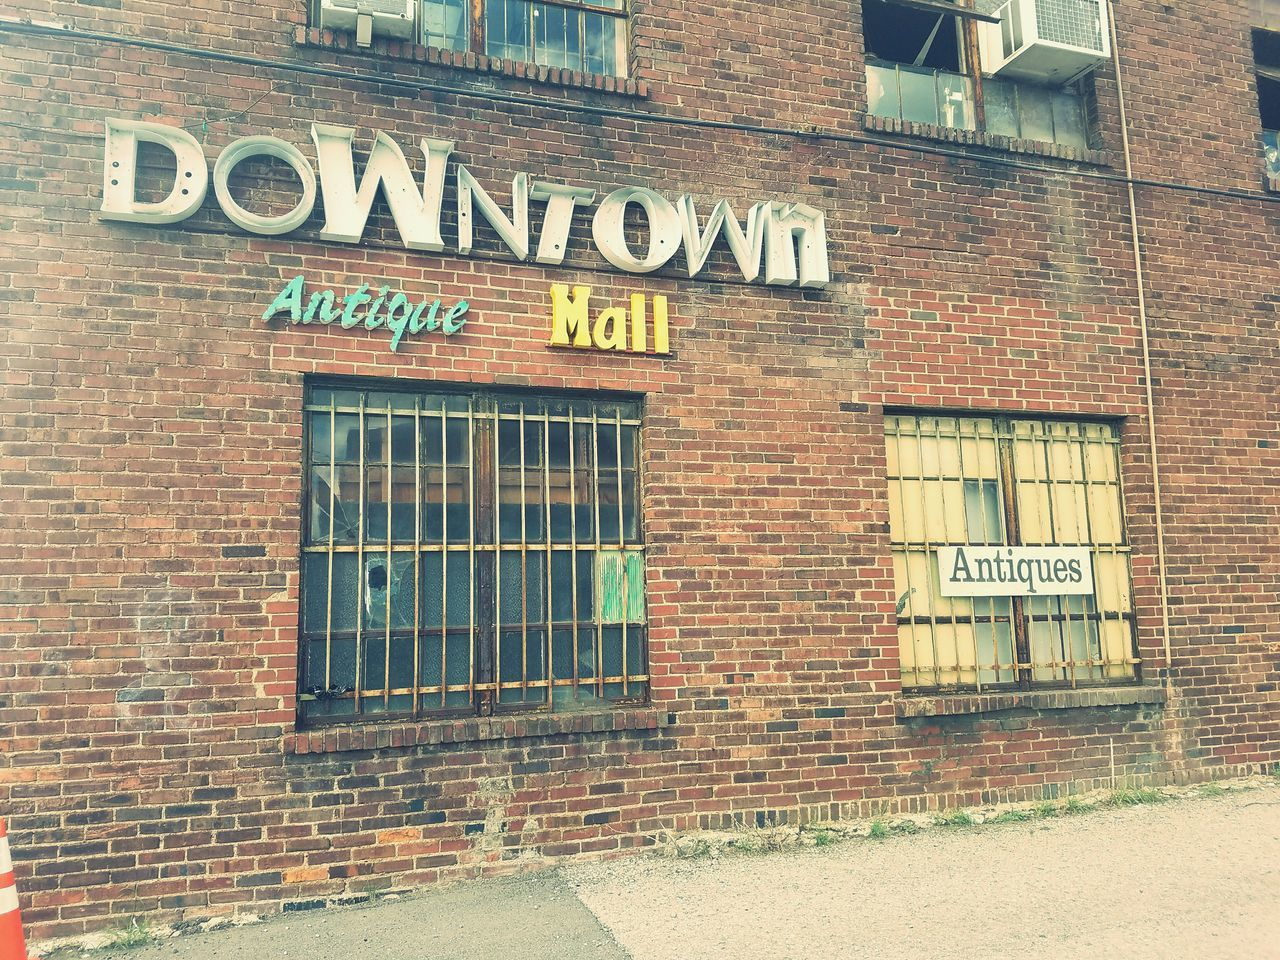 text, western script, building exterior, architecture, built structure, communication, capital letter, brick wall, store, window, outdoors, day, no people, open sign